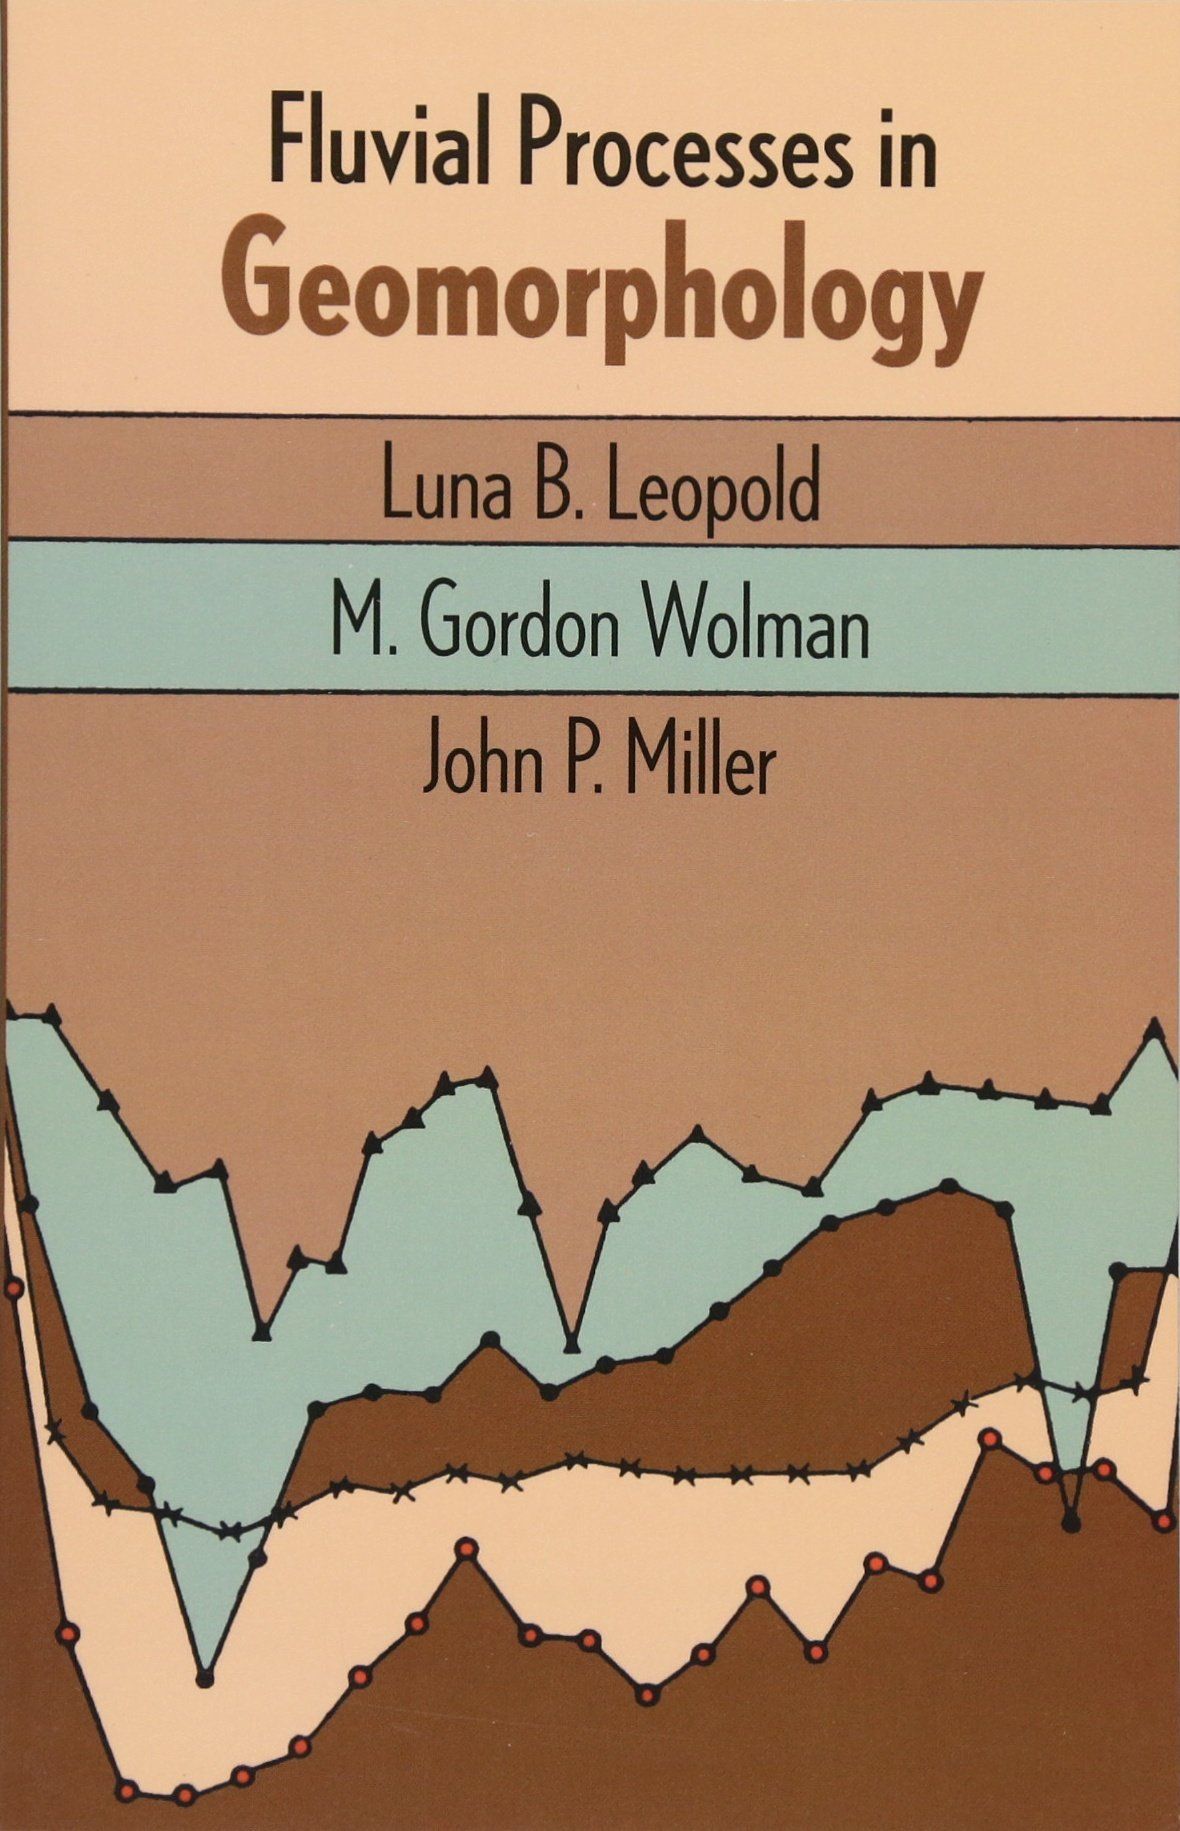 Fluvial Processes in Geomorphology